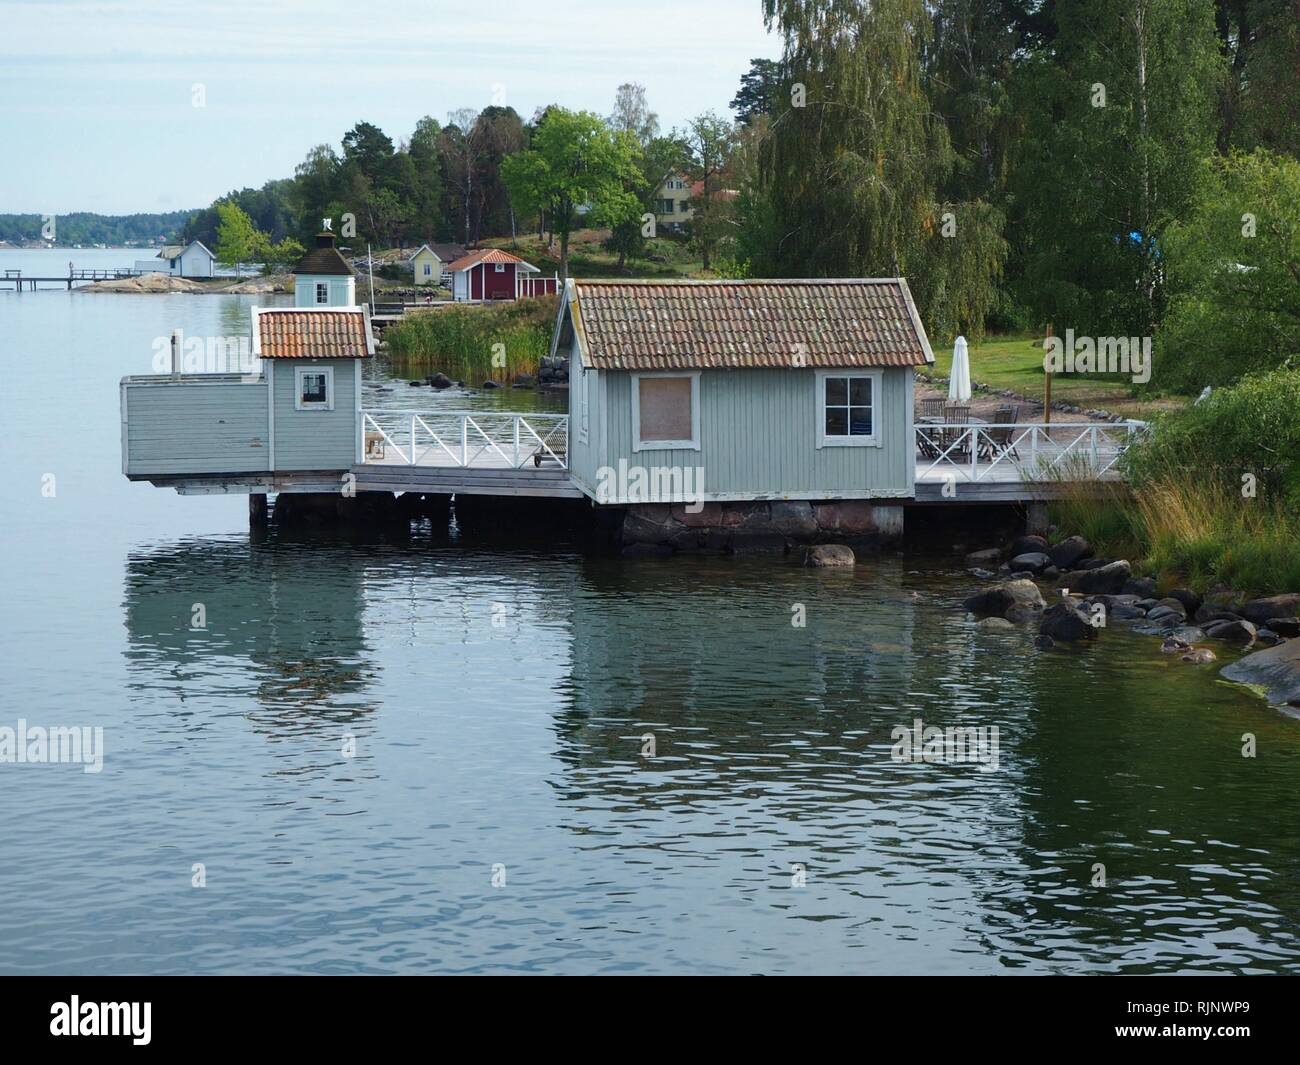 Wooden boat house and jetty on an island in the Stockholm Archipelago, Sweden - Stock Image